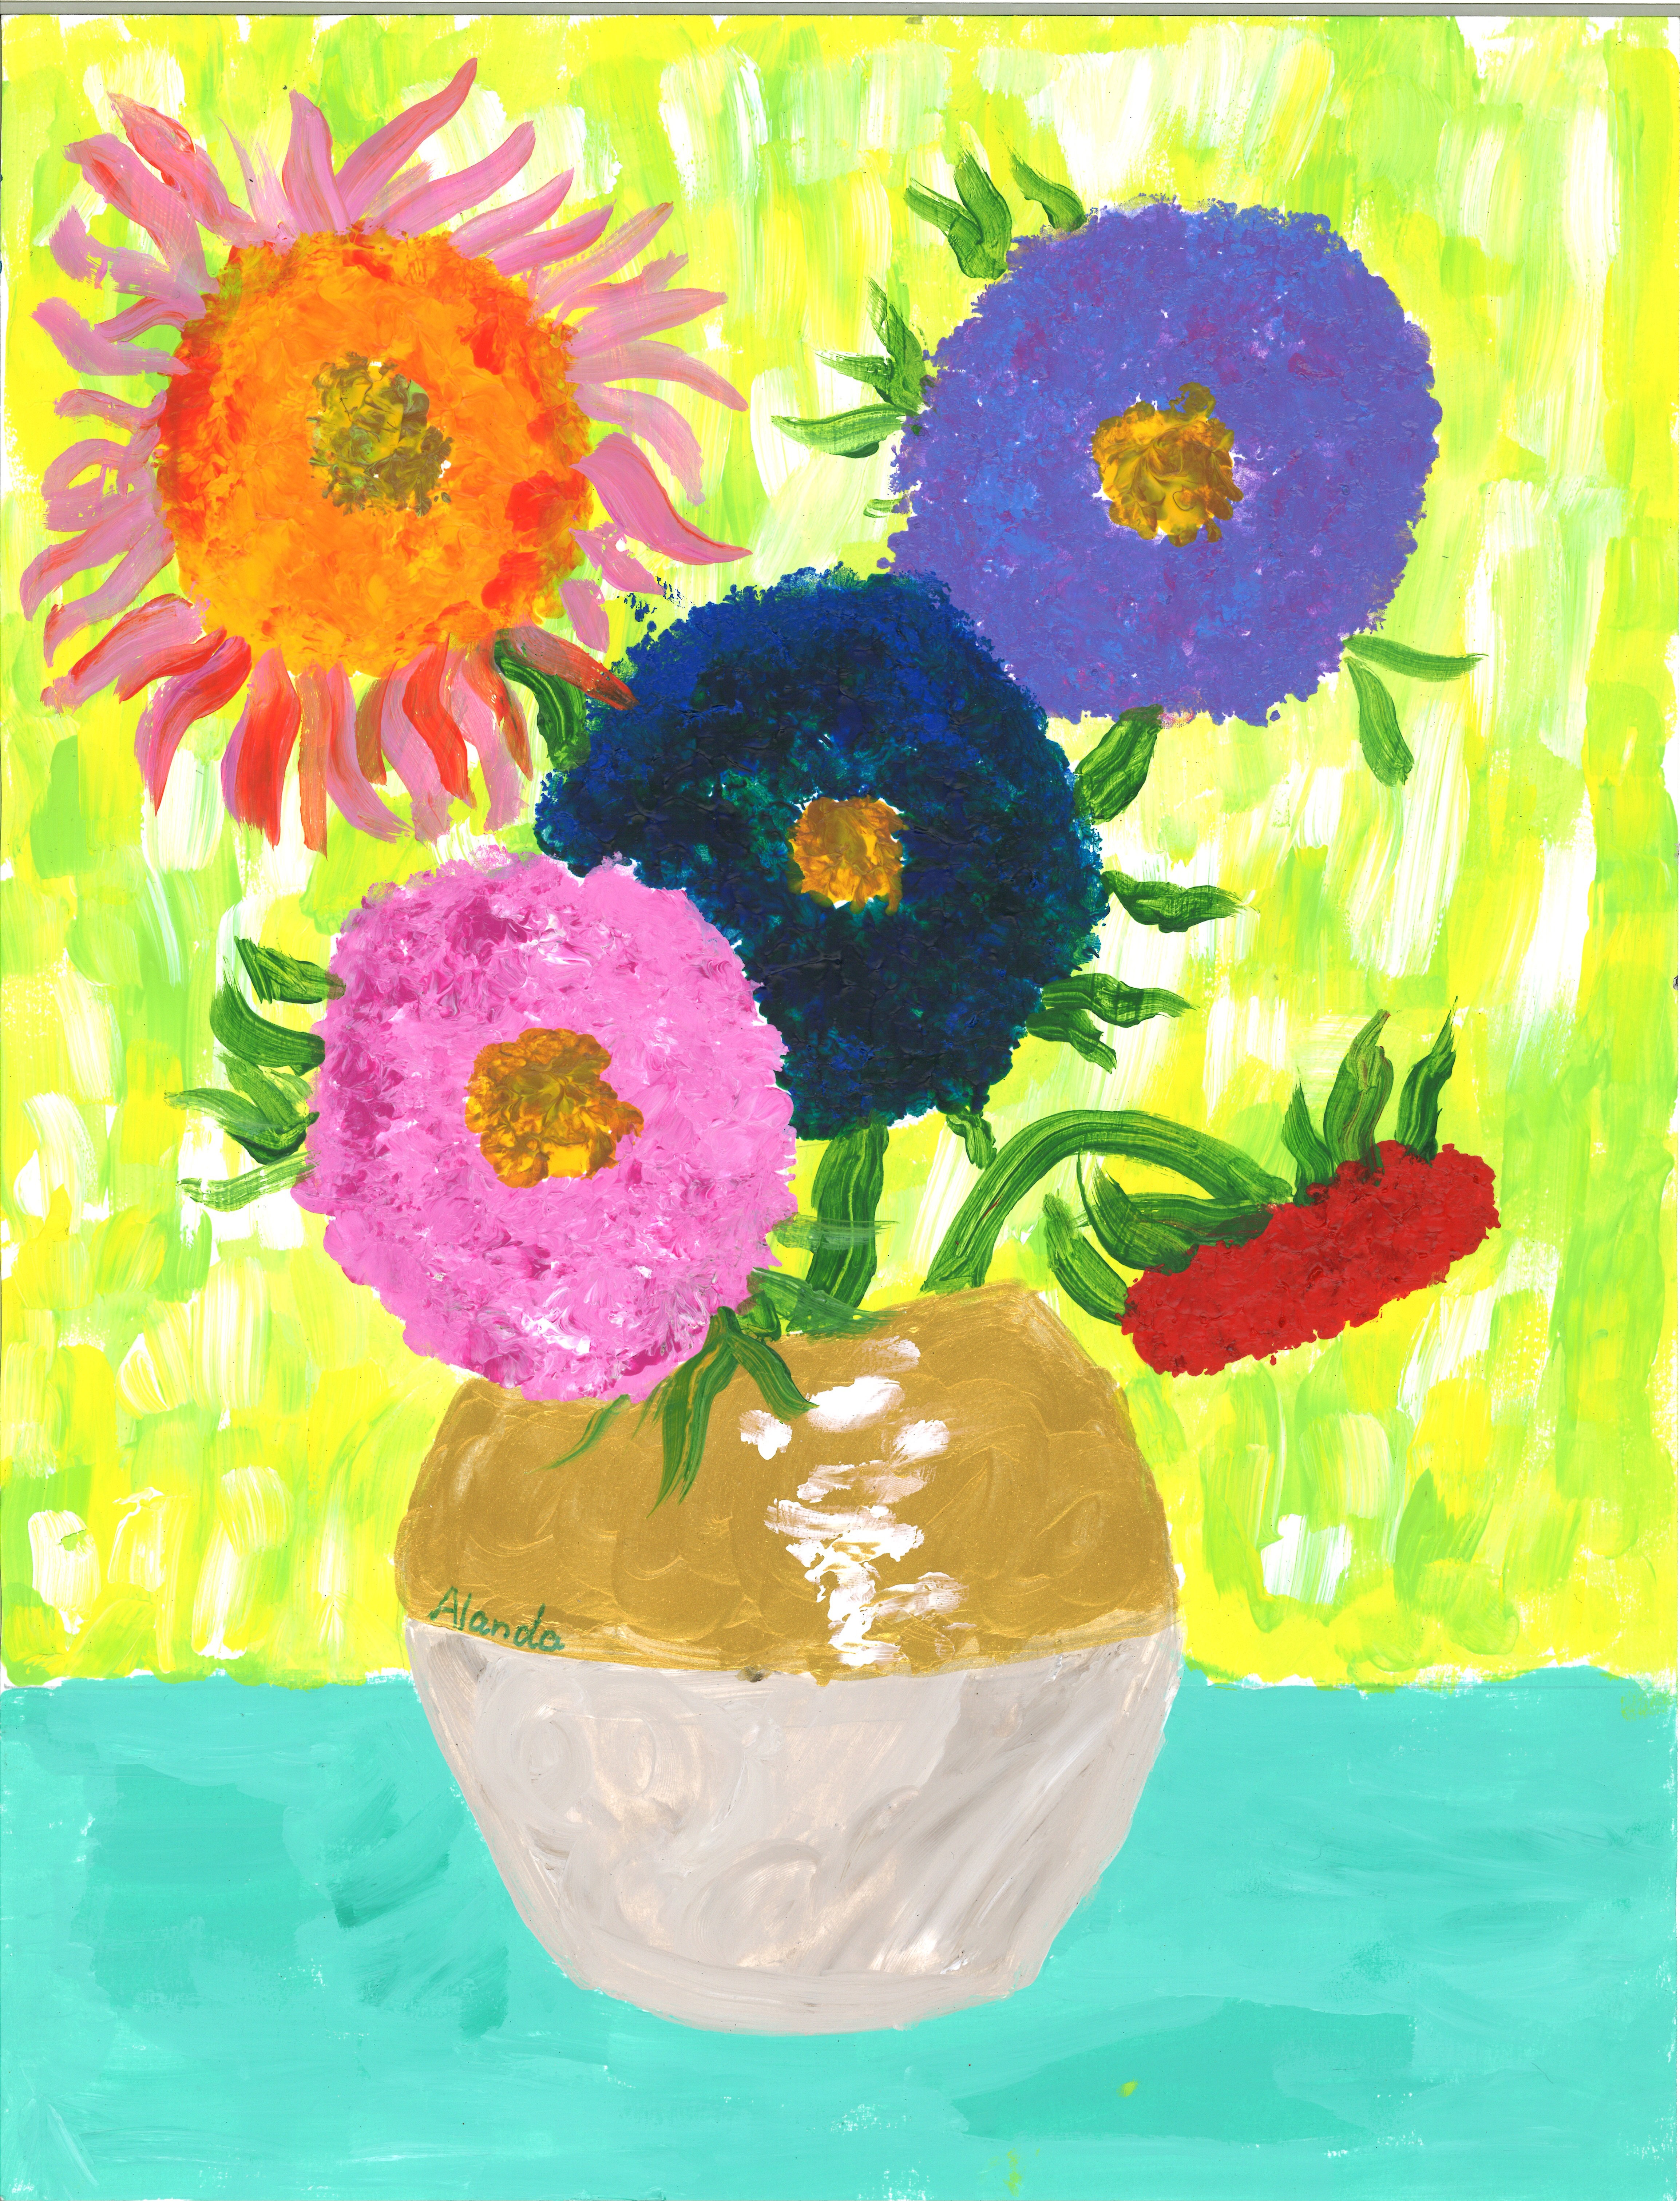 Alanda, aged 9, inspired by Vincent van Gogh, 'Sunflowers'